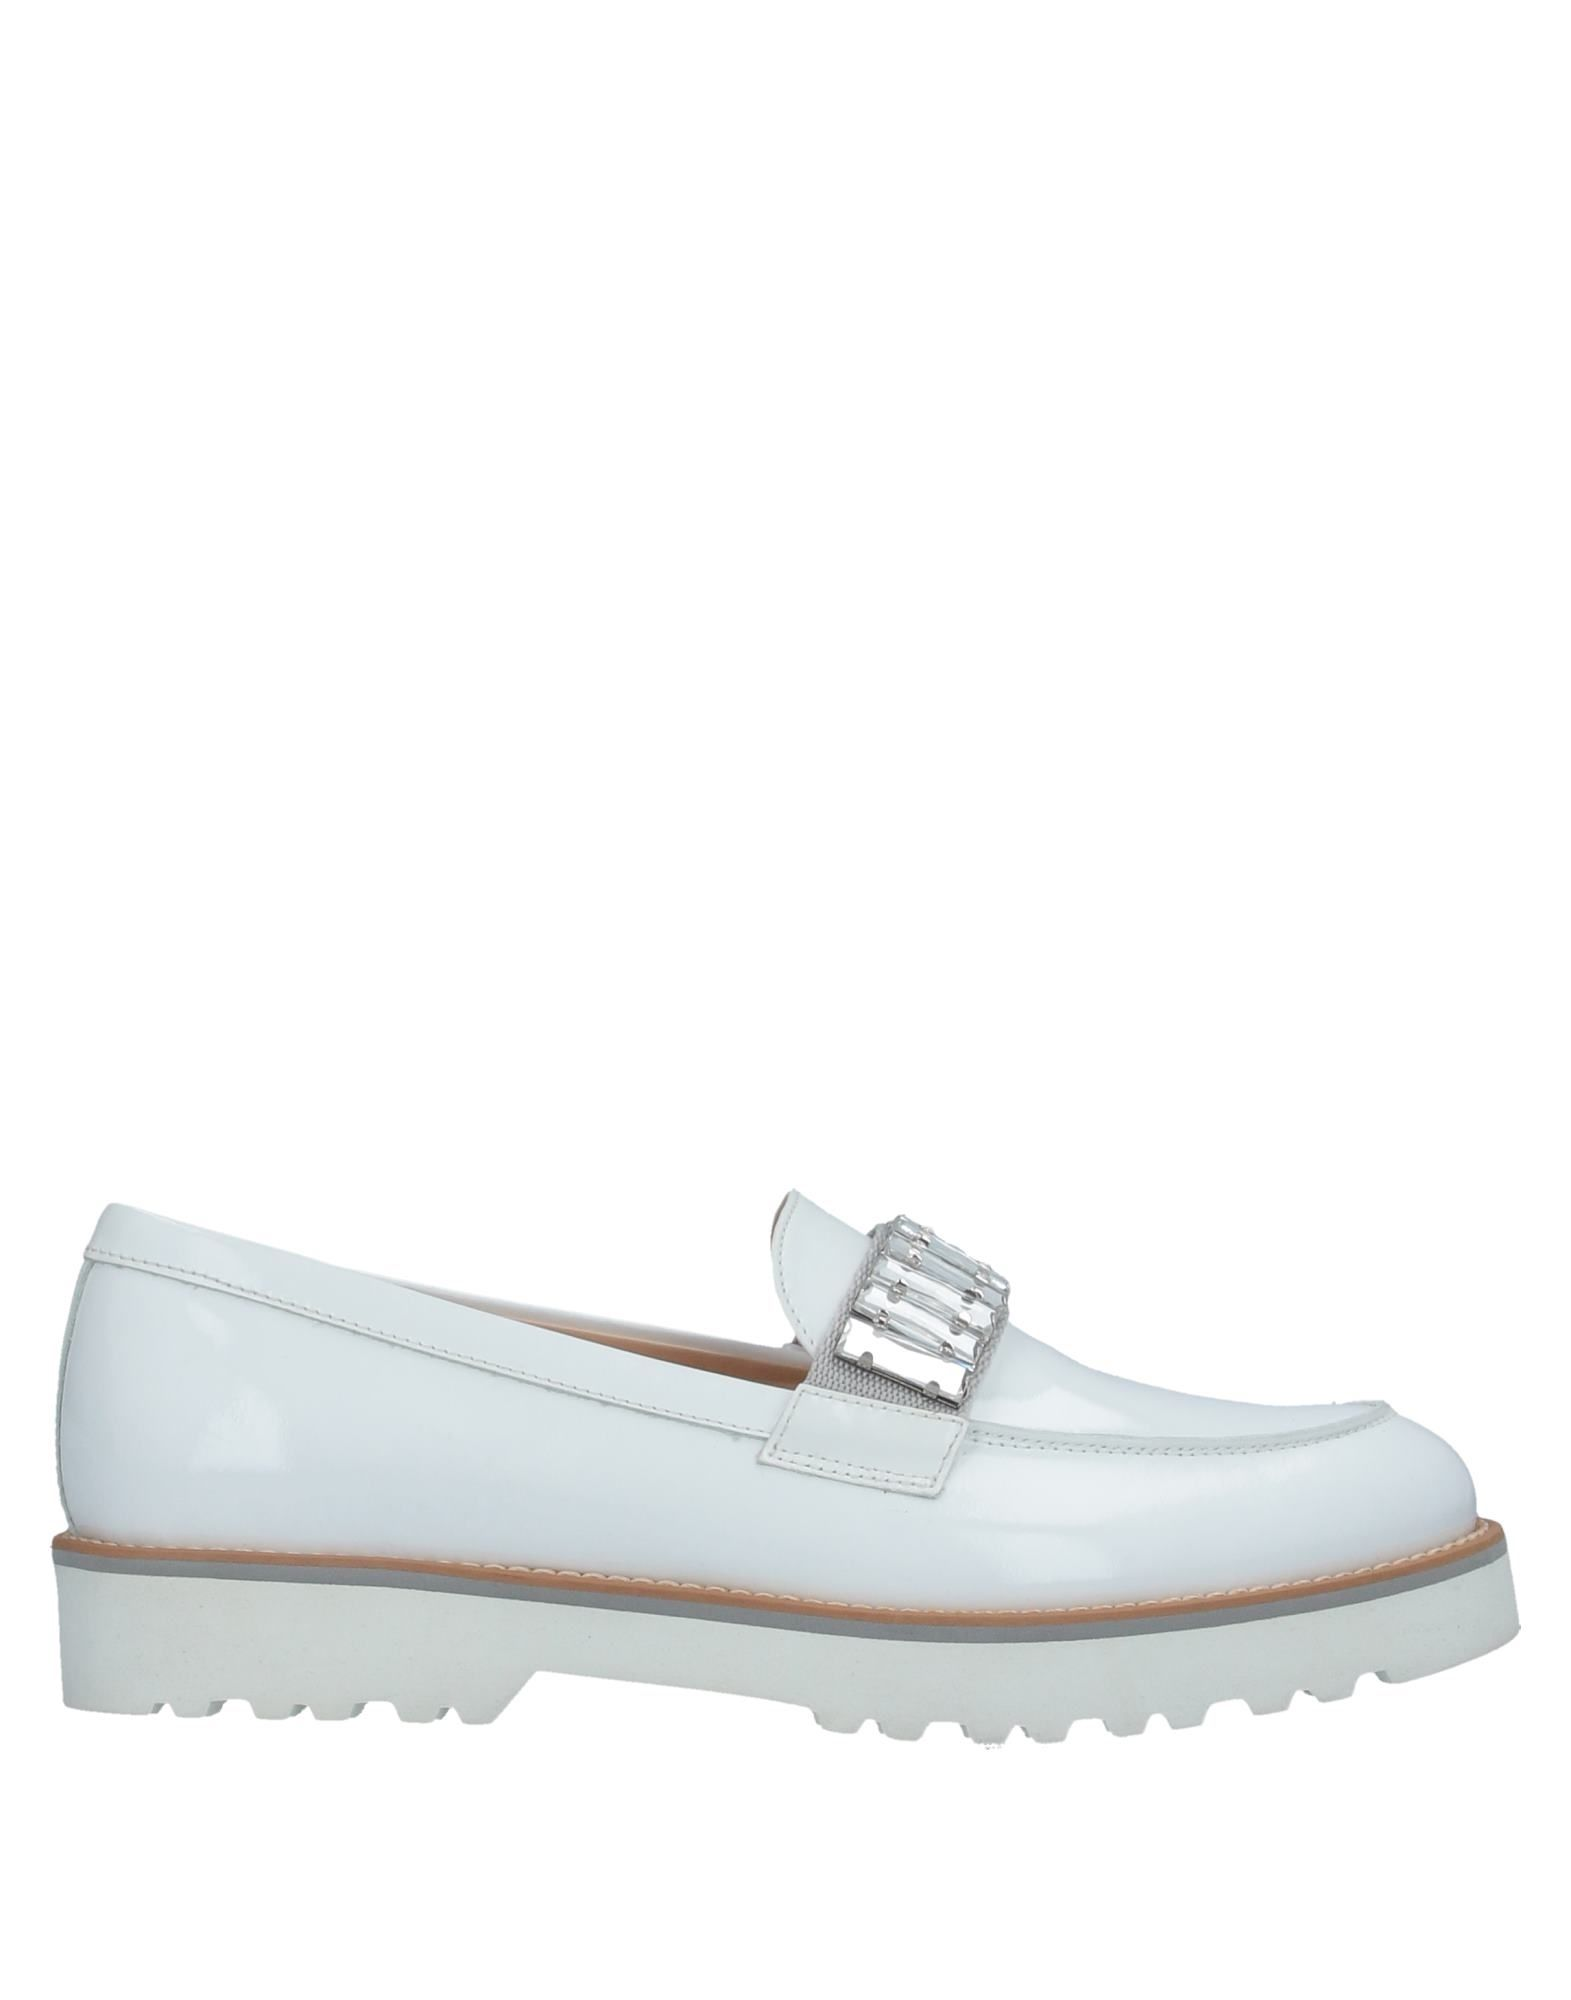 HOGAN Loafers. leather, varnished effect, rhinestones, solid color, round toeline, elasticized gores, square heel, leather lining, rubber cleated sole, contains non-textile parts of animal origin. Soft Leather